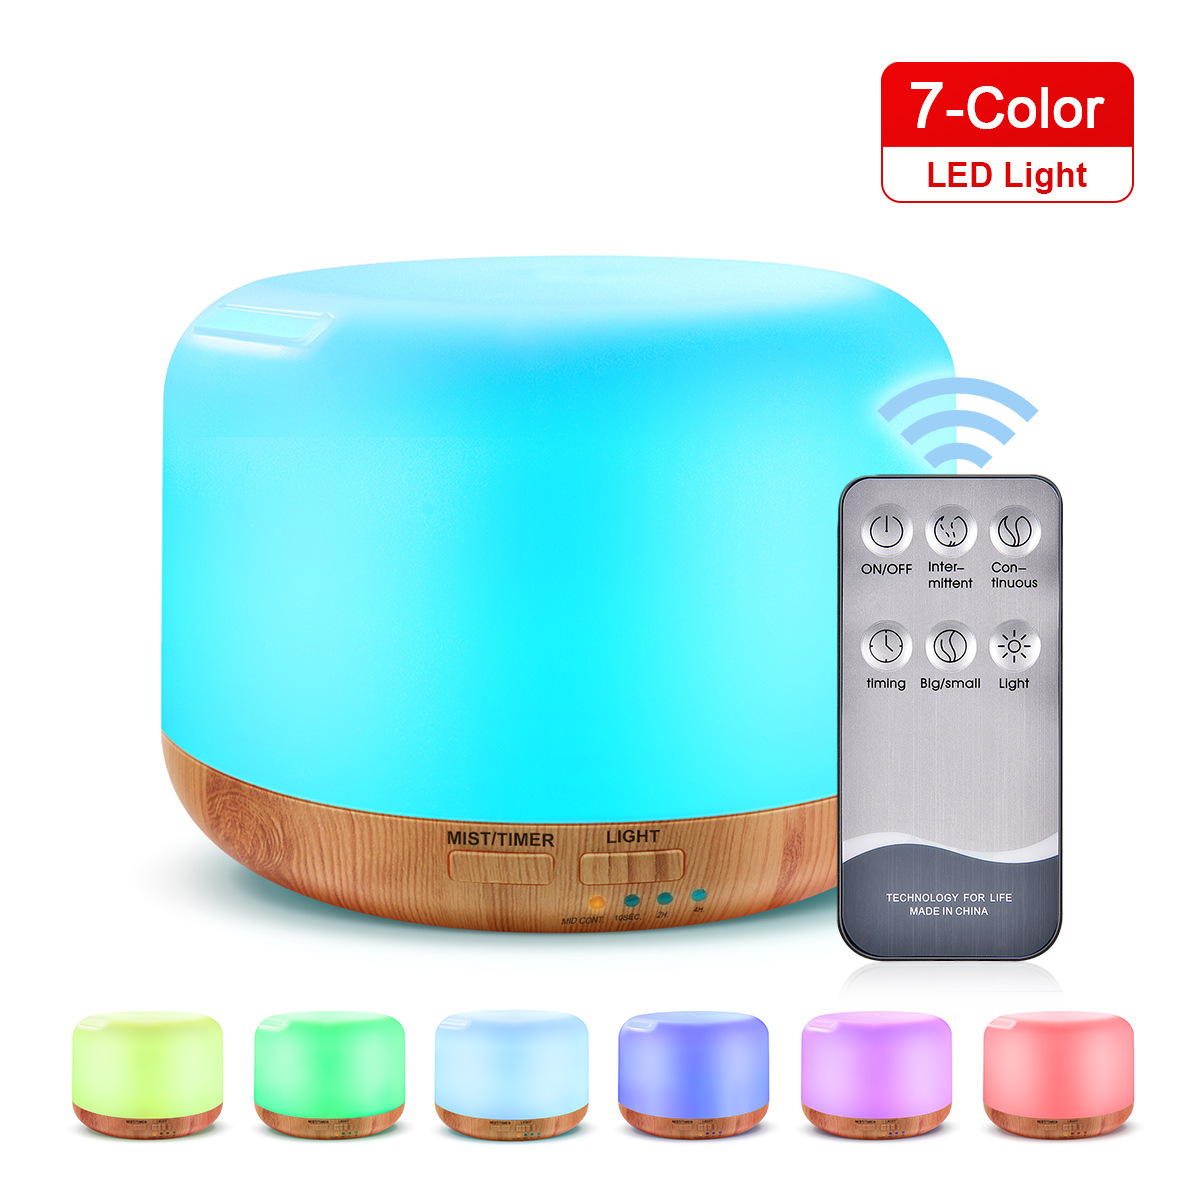 300ml Remote Control Wood Grain Household Fragrance Lamp Ultrasonic Mute Humidifier Light wood grain remote control_KS Plug